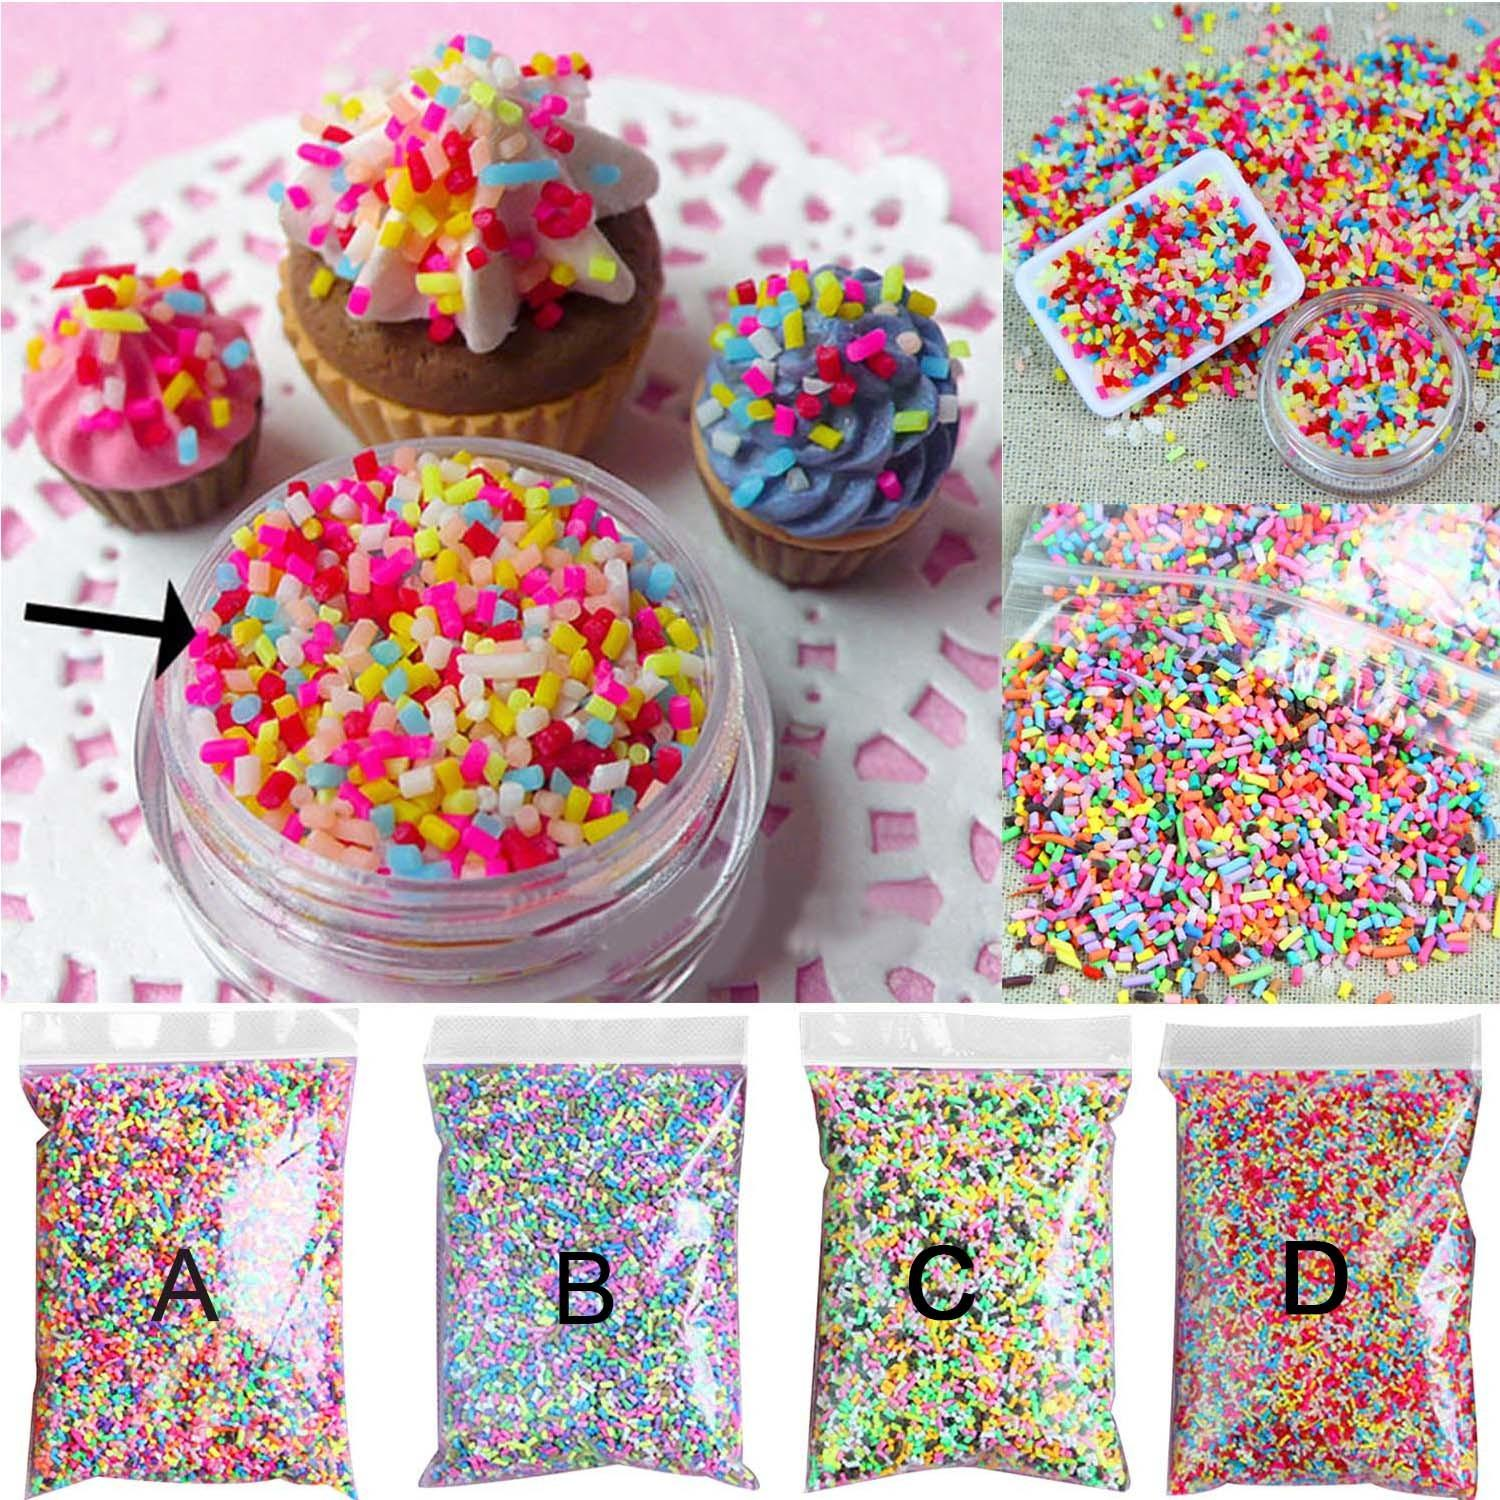 100g Diy Polymer Clay Colorful Fake Candy Sweets Sugar